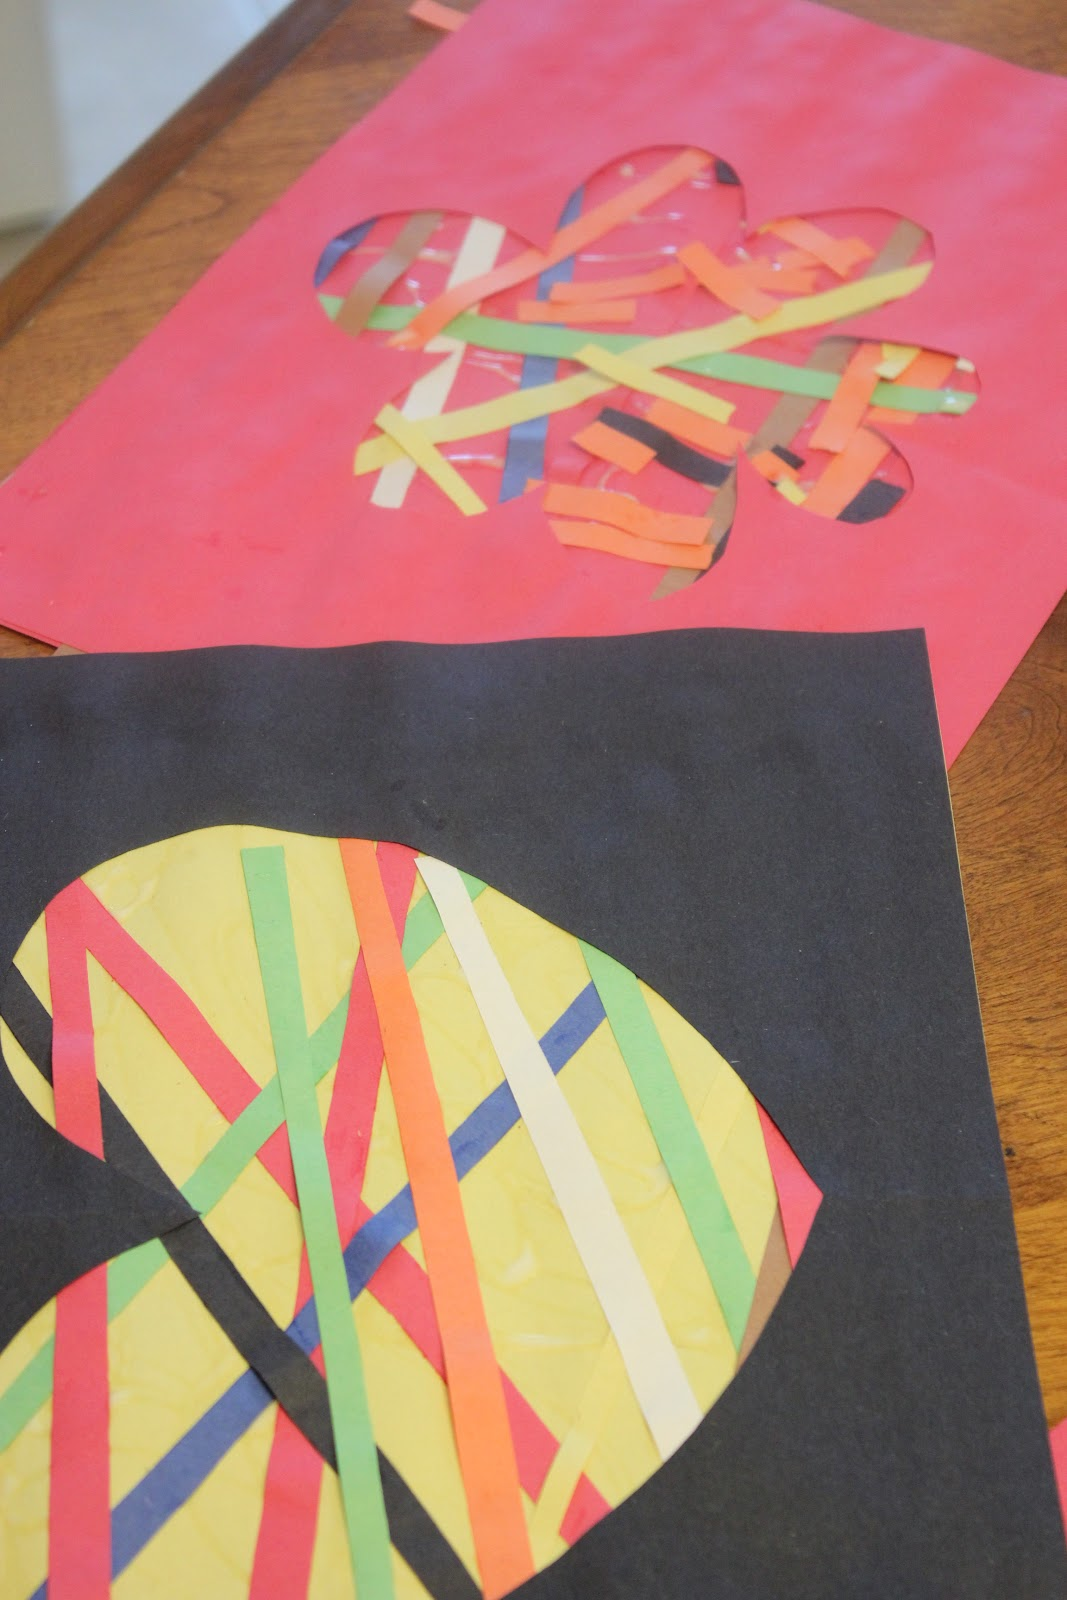 Construction Paper Craft - Paper Crafts Ideas for Kids